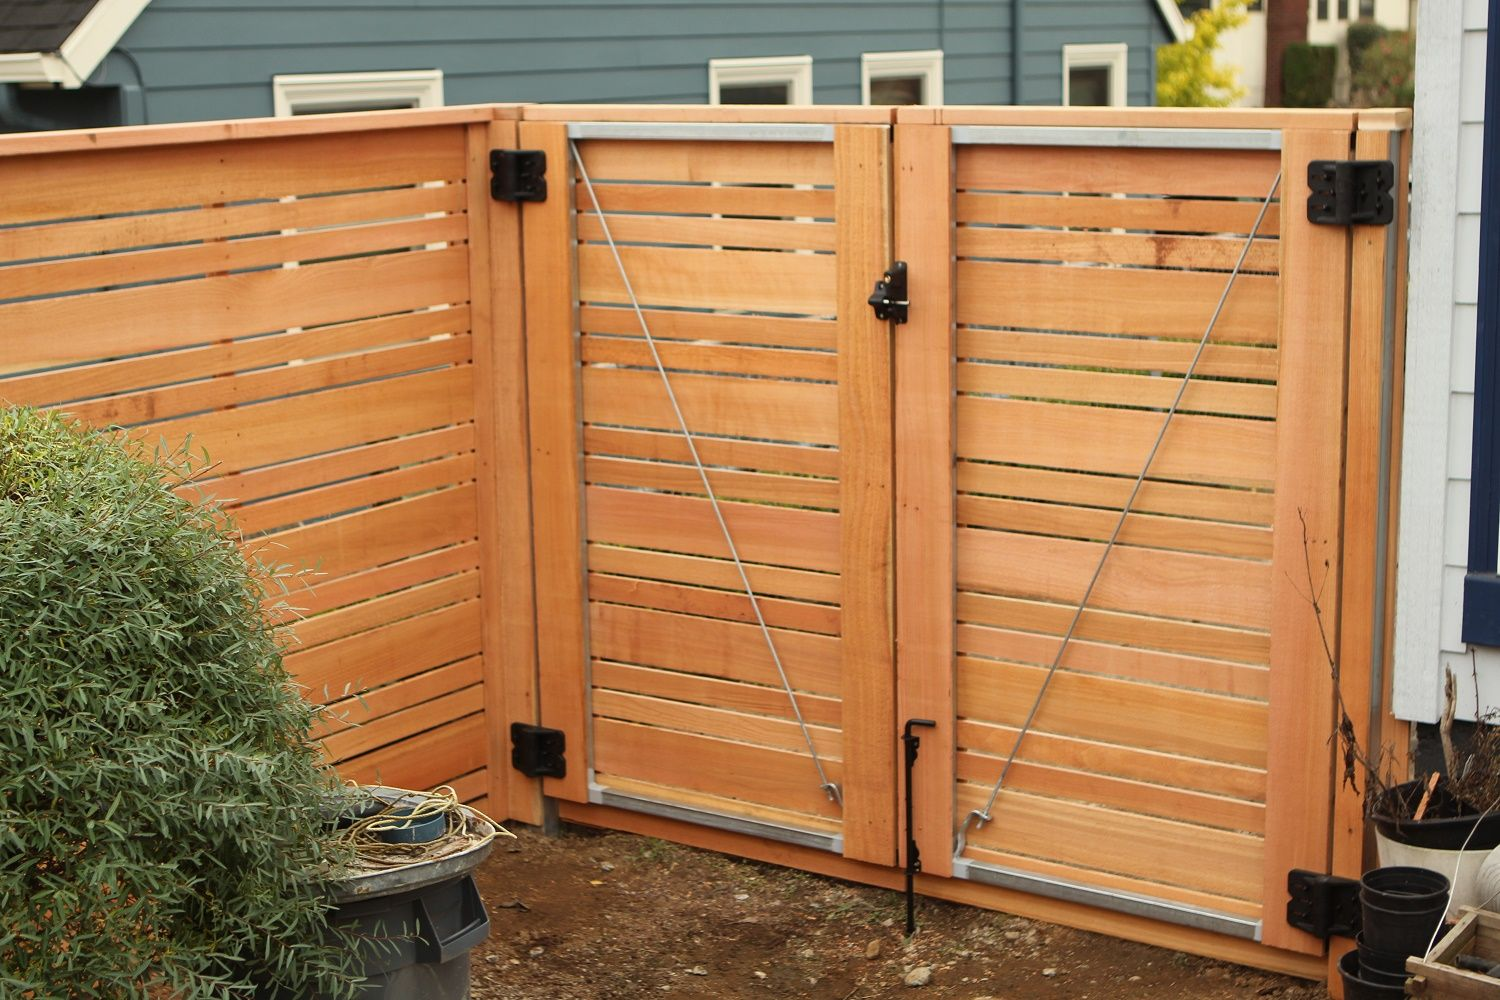 Double Door Gate Horizontal Wood Fence With Alternating Picket Sizes For An Extra Unique Look Cedar Fences